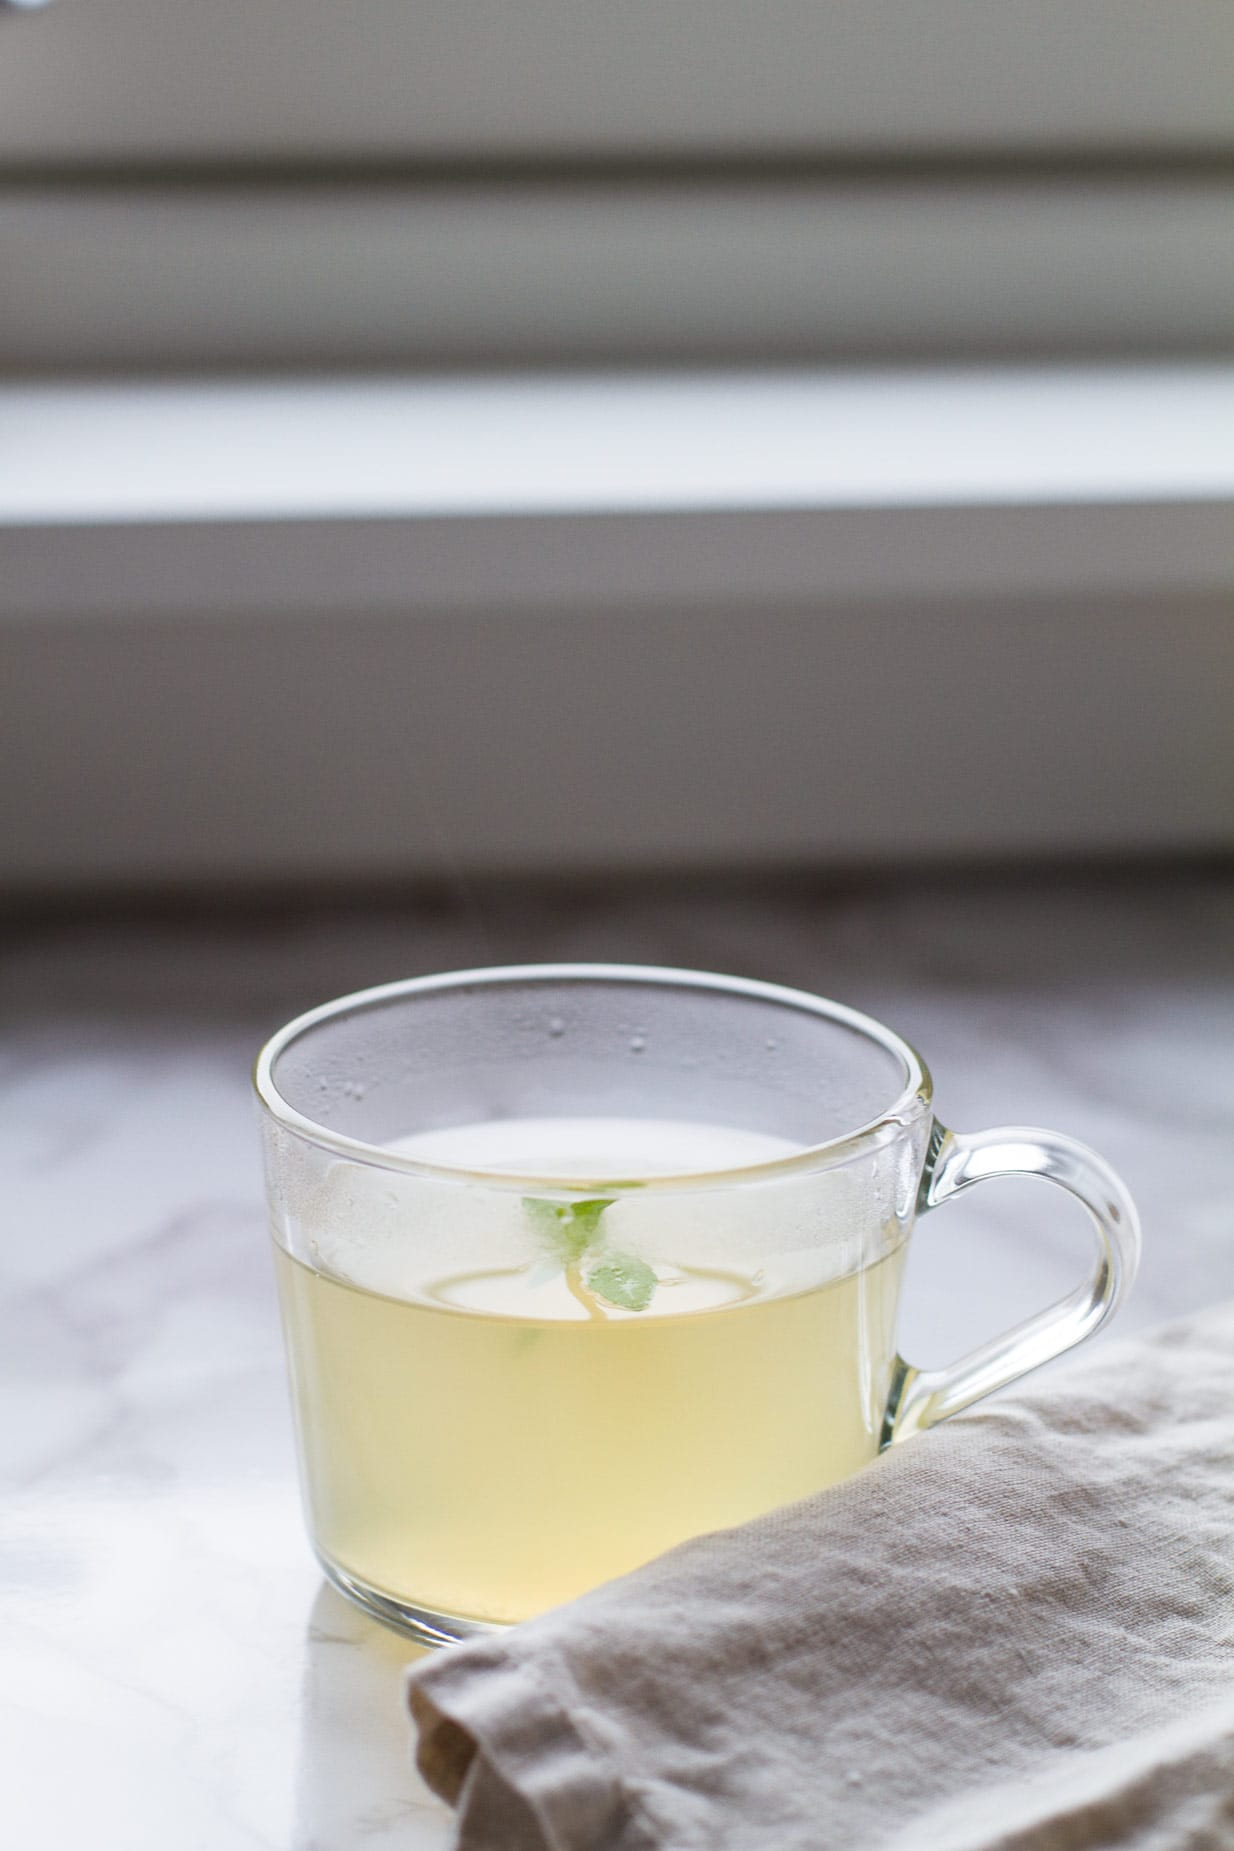 Clear mug with pale yellow drink and lemon verbena garnish.